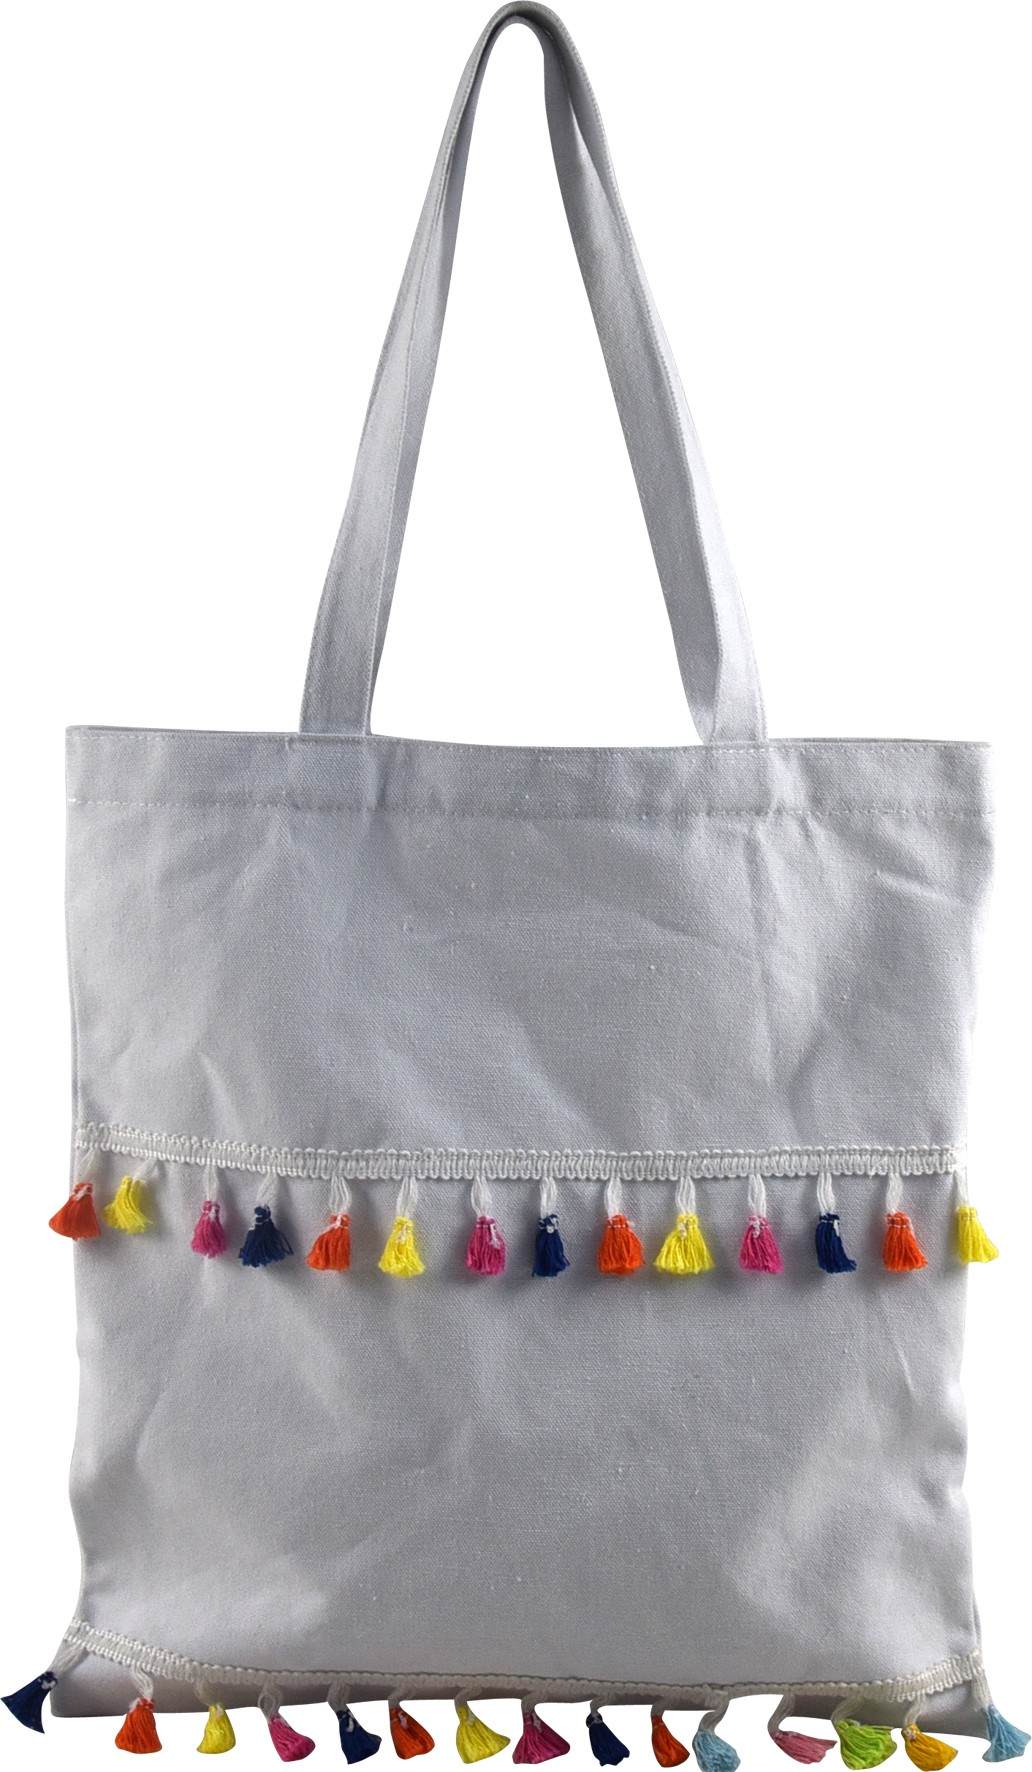 Fashional Custom brand logo printed canvas tote cotton bag